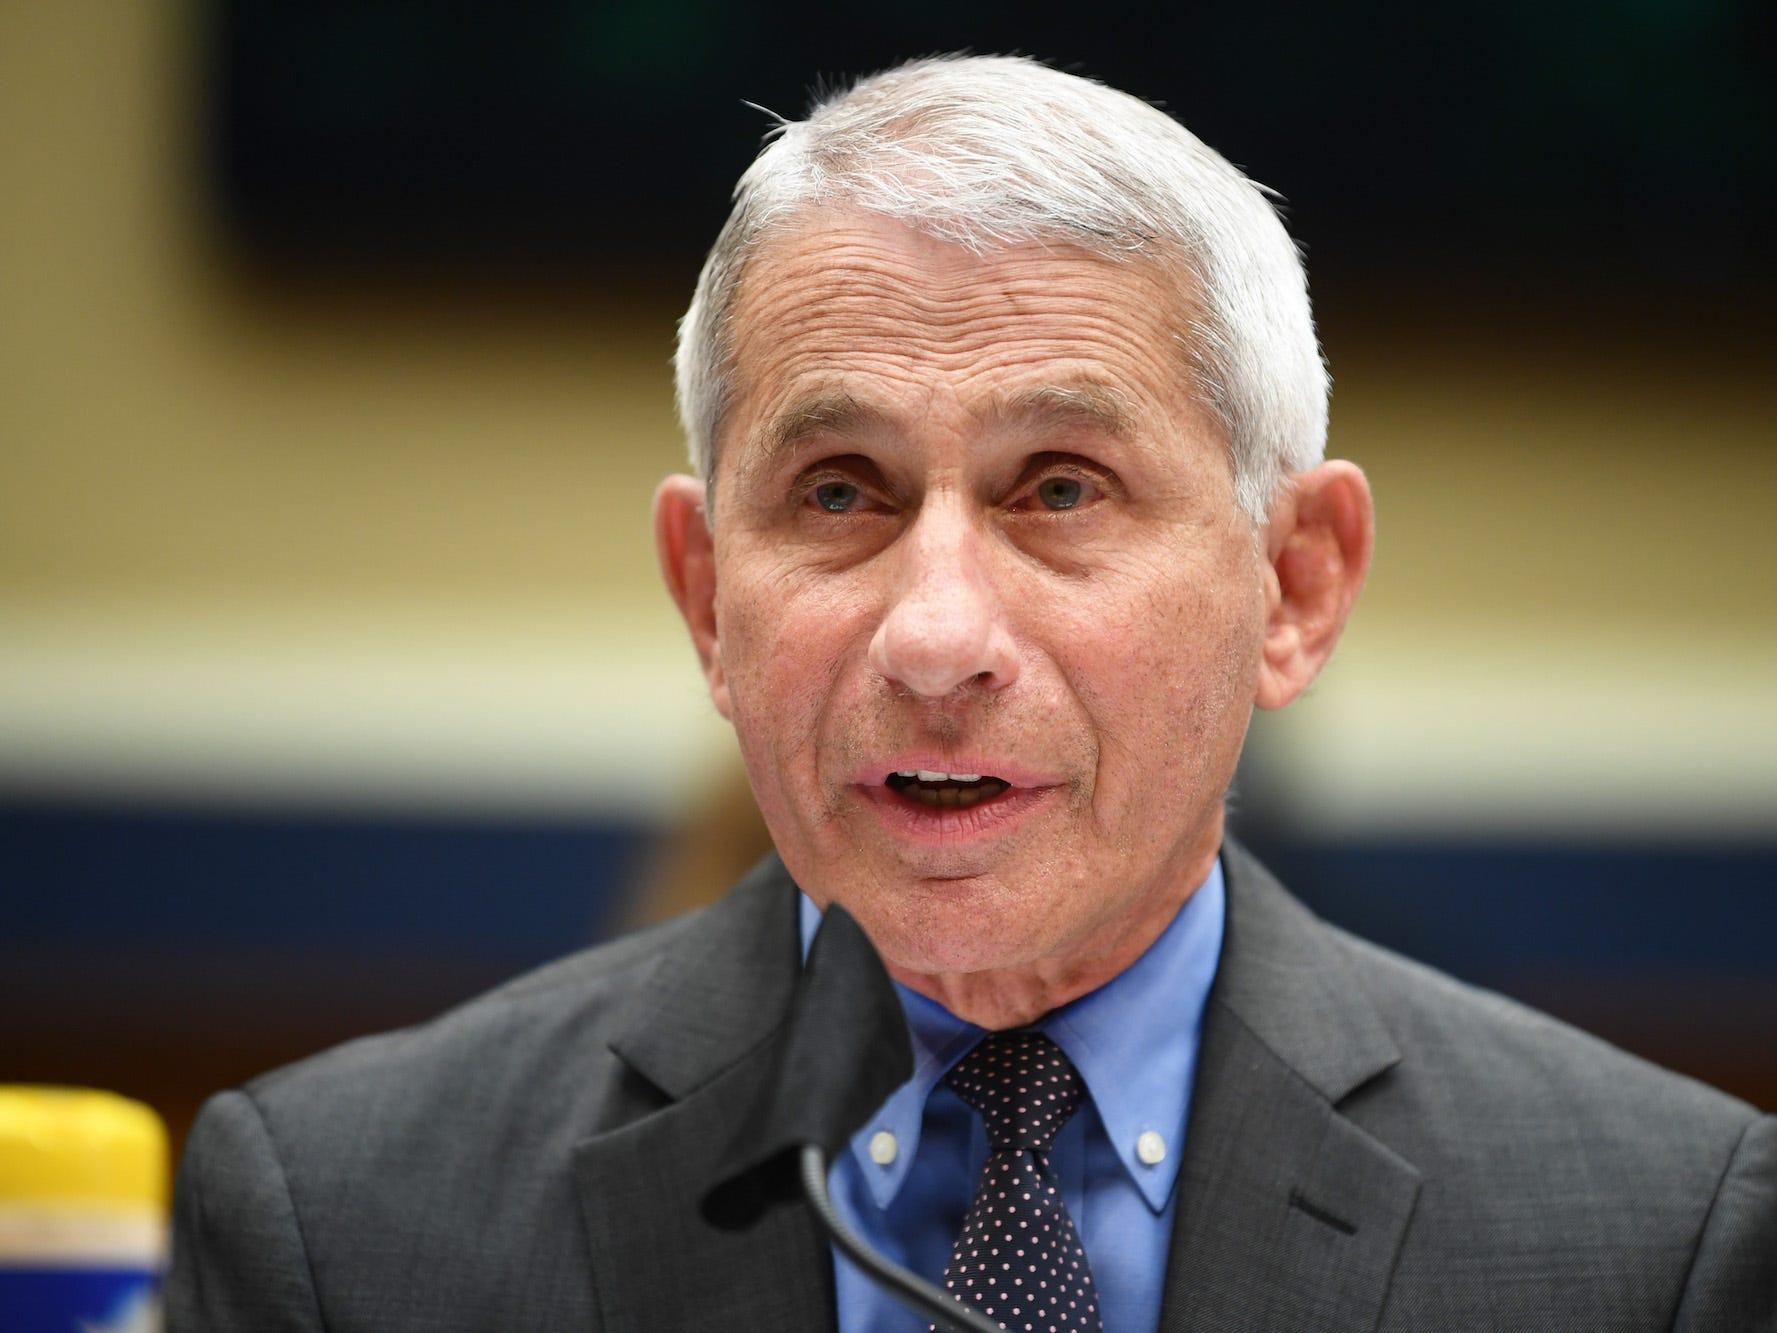 Fauci says COVID-19 can be brought under control by Spring 2022 - but only if millions more Americans get their shot